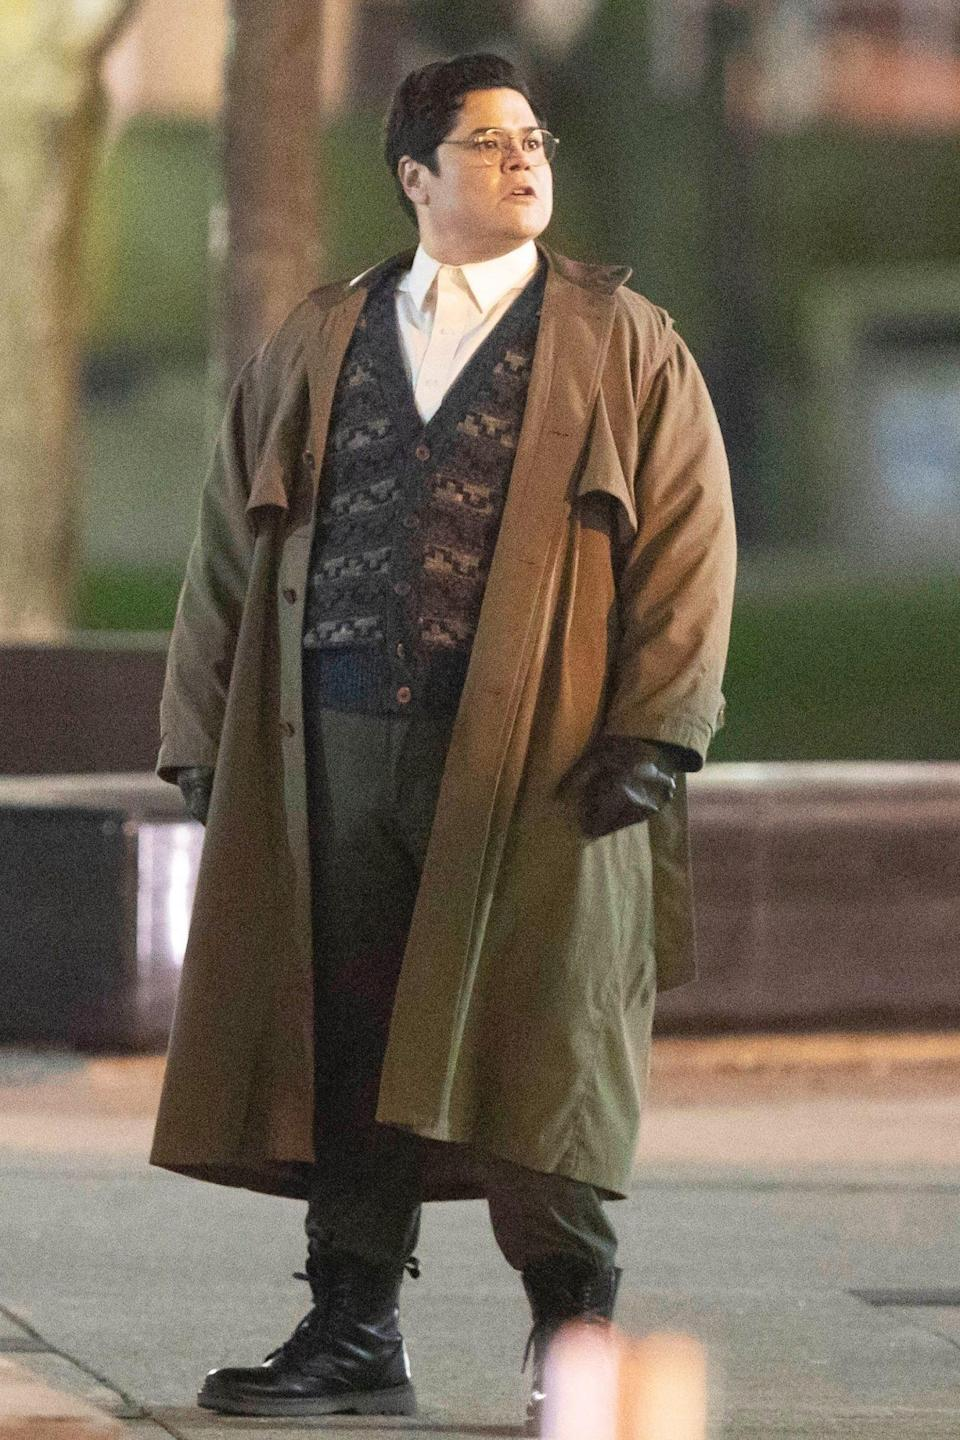 <p>Harvey Guillen gets into character on Thursday on the Toronto set of <em>What We Do In The Shadows</em> season 3.</p>